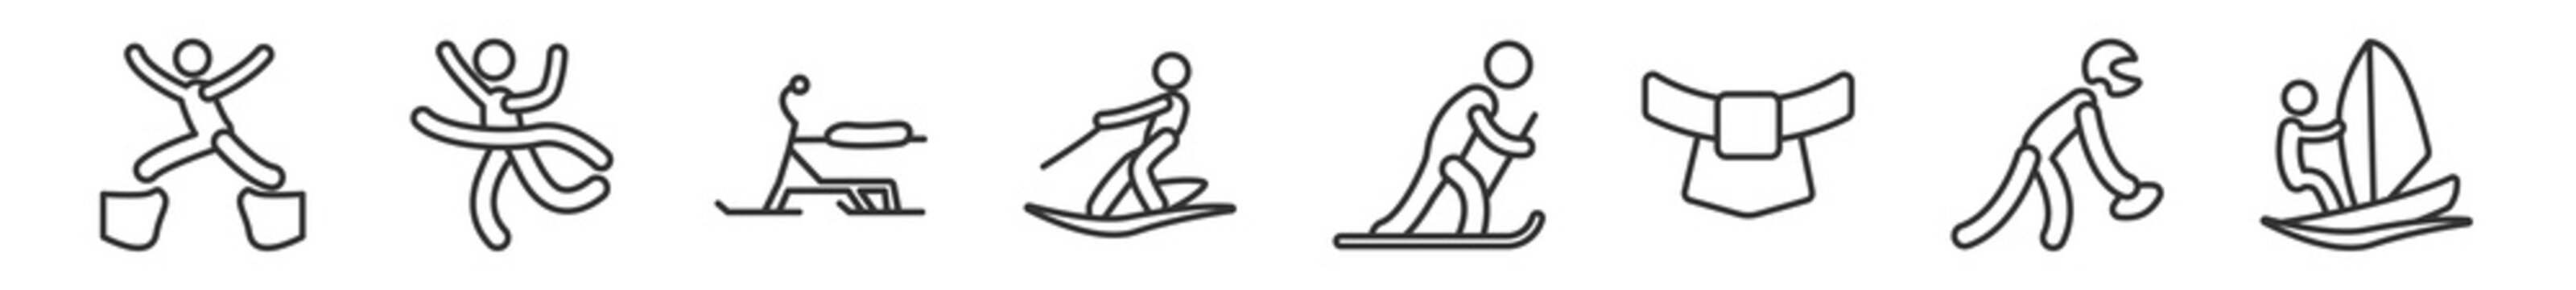 outline set of sports line icons. linear vector icons such as man jumping with opened legs, winning the race, skibob, water ski, skier skiing, man windsurfing. vector illustration.